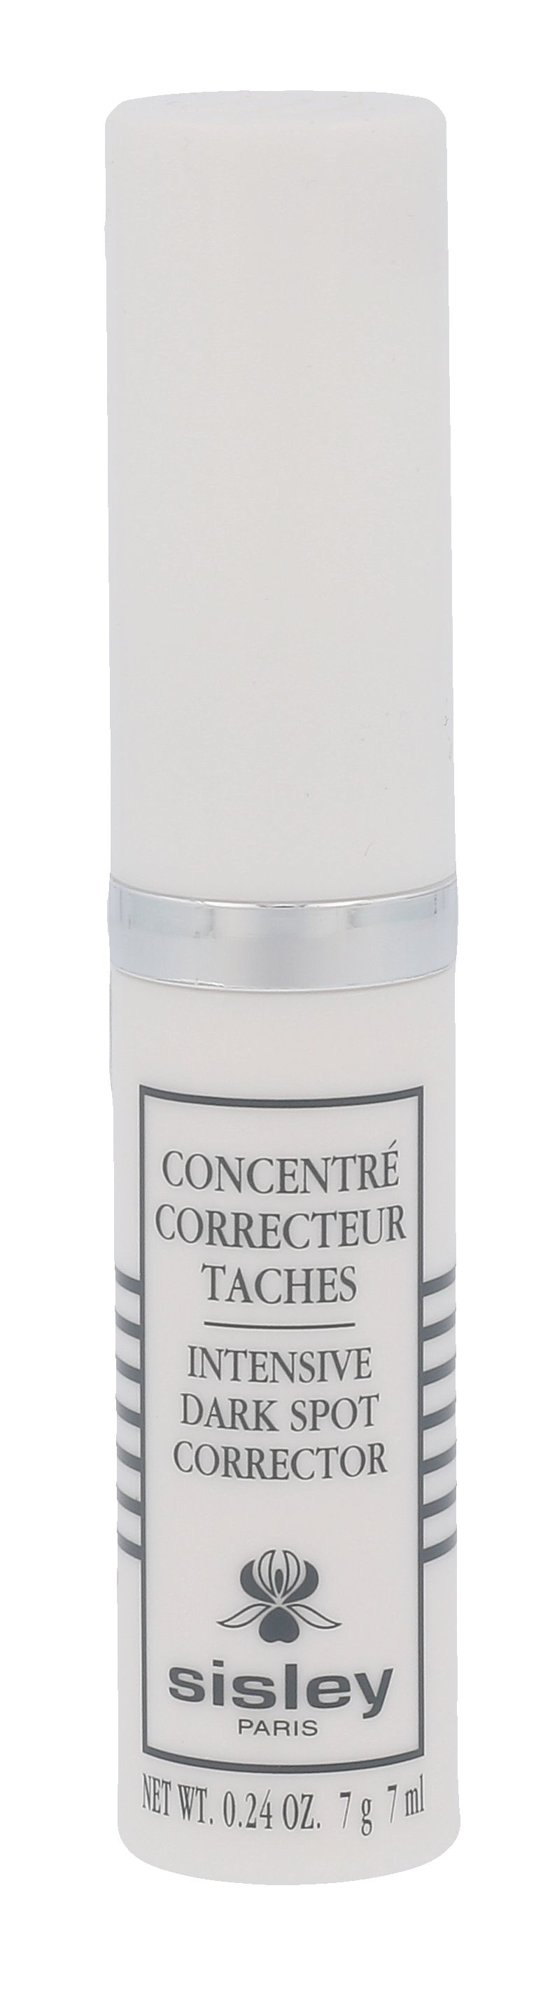 Sisley Dark Spot Corrector Cosmetic 7ml